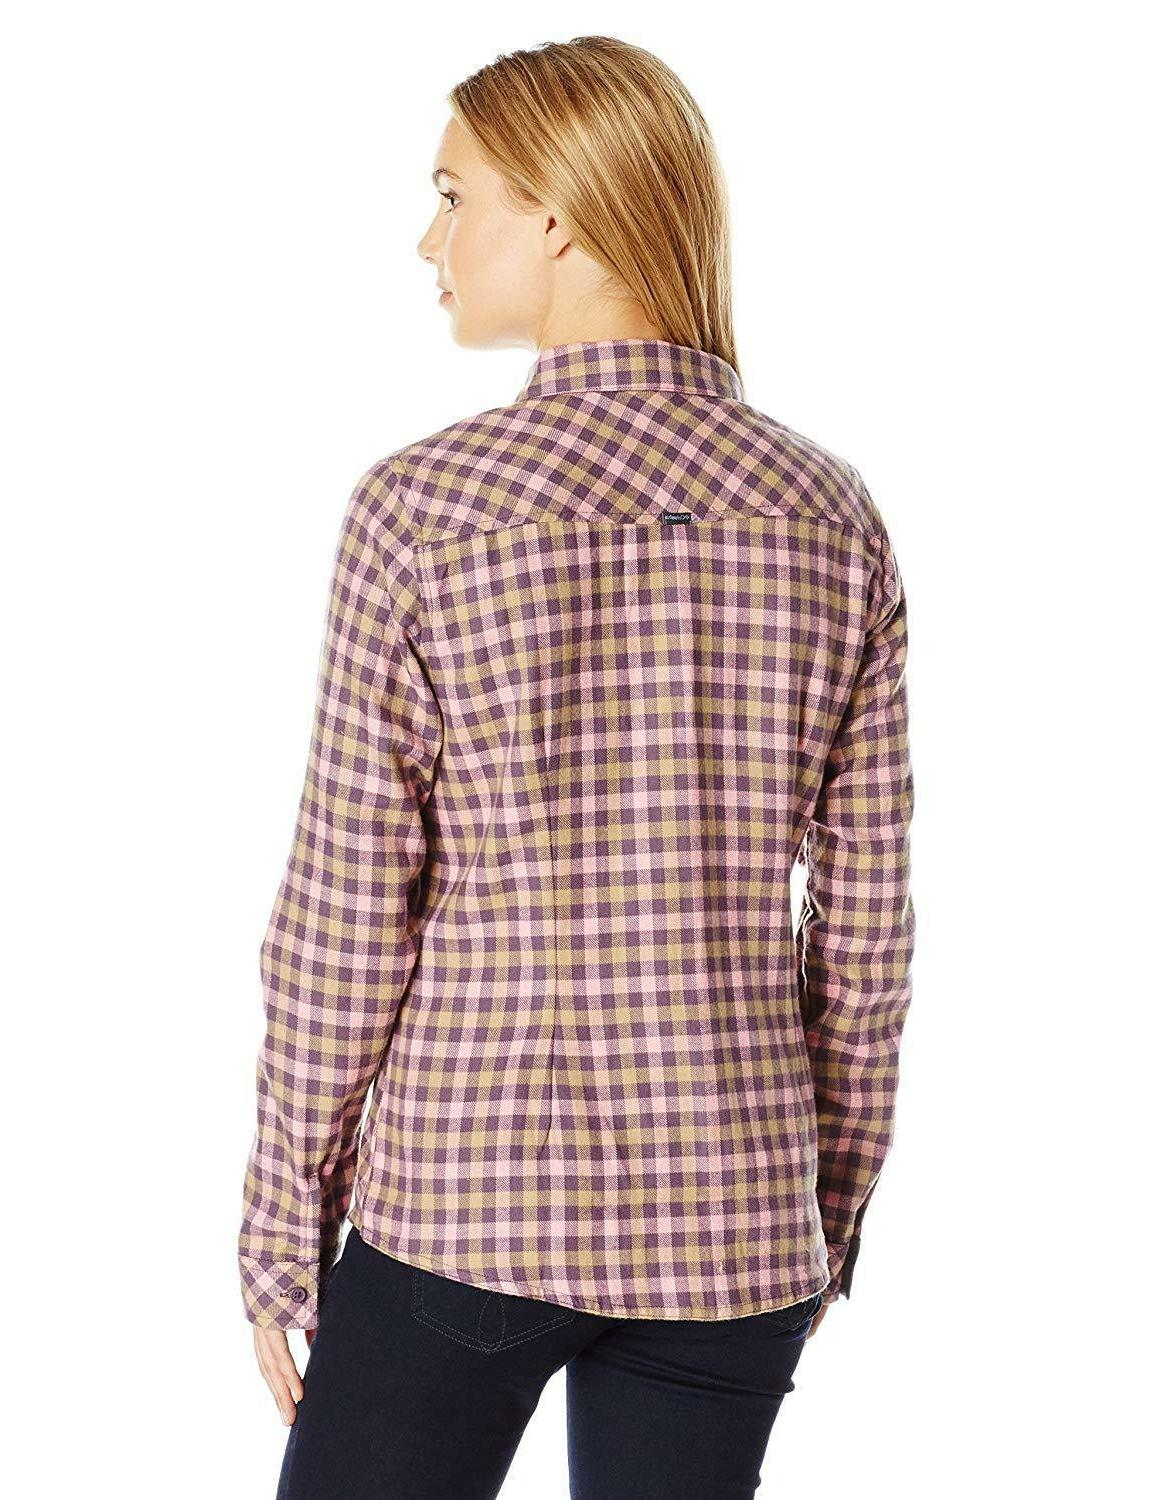 NEW Columbia Women's Put Flannel Size